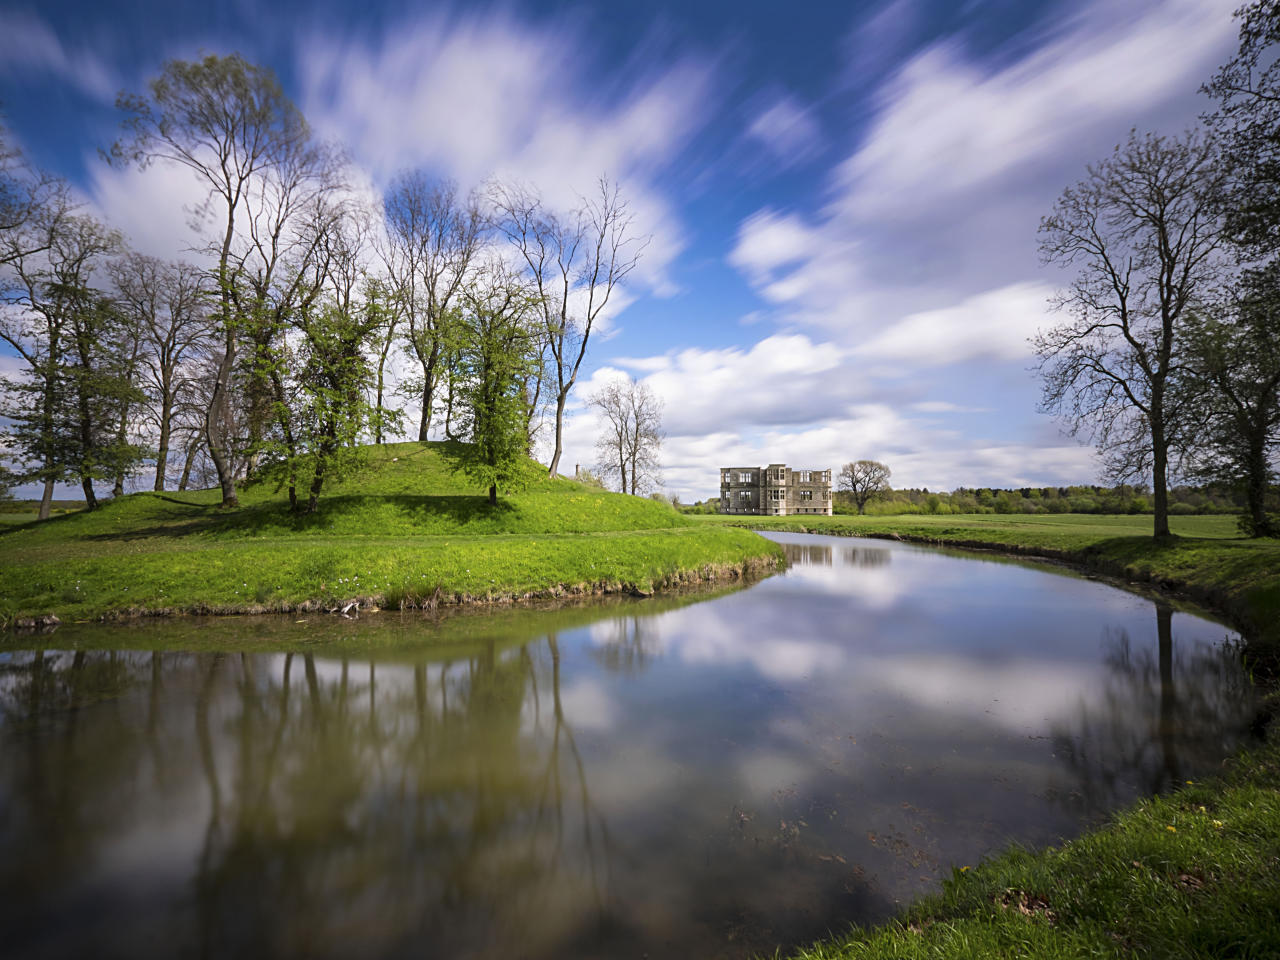 Lyveden New Bield, Northamptonshire. Heritage sites around the world are under threat due to conditions created by climate change. Increased risk for floods or fire put some of the world's most famous monuments and locations in jeopardy. (Getty)